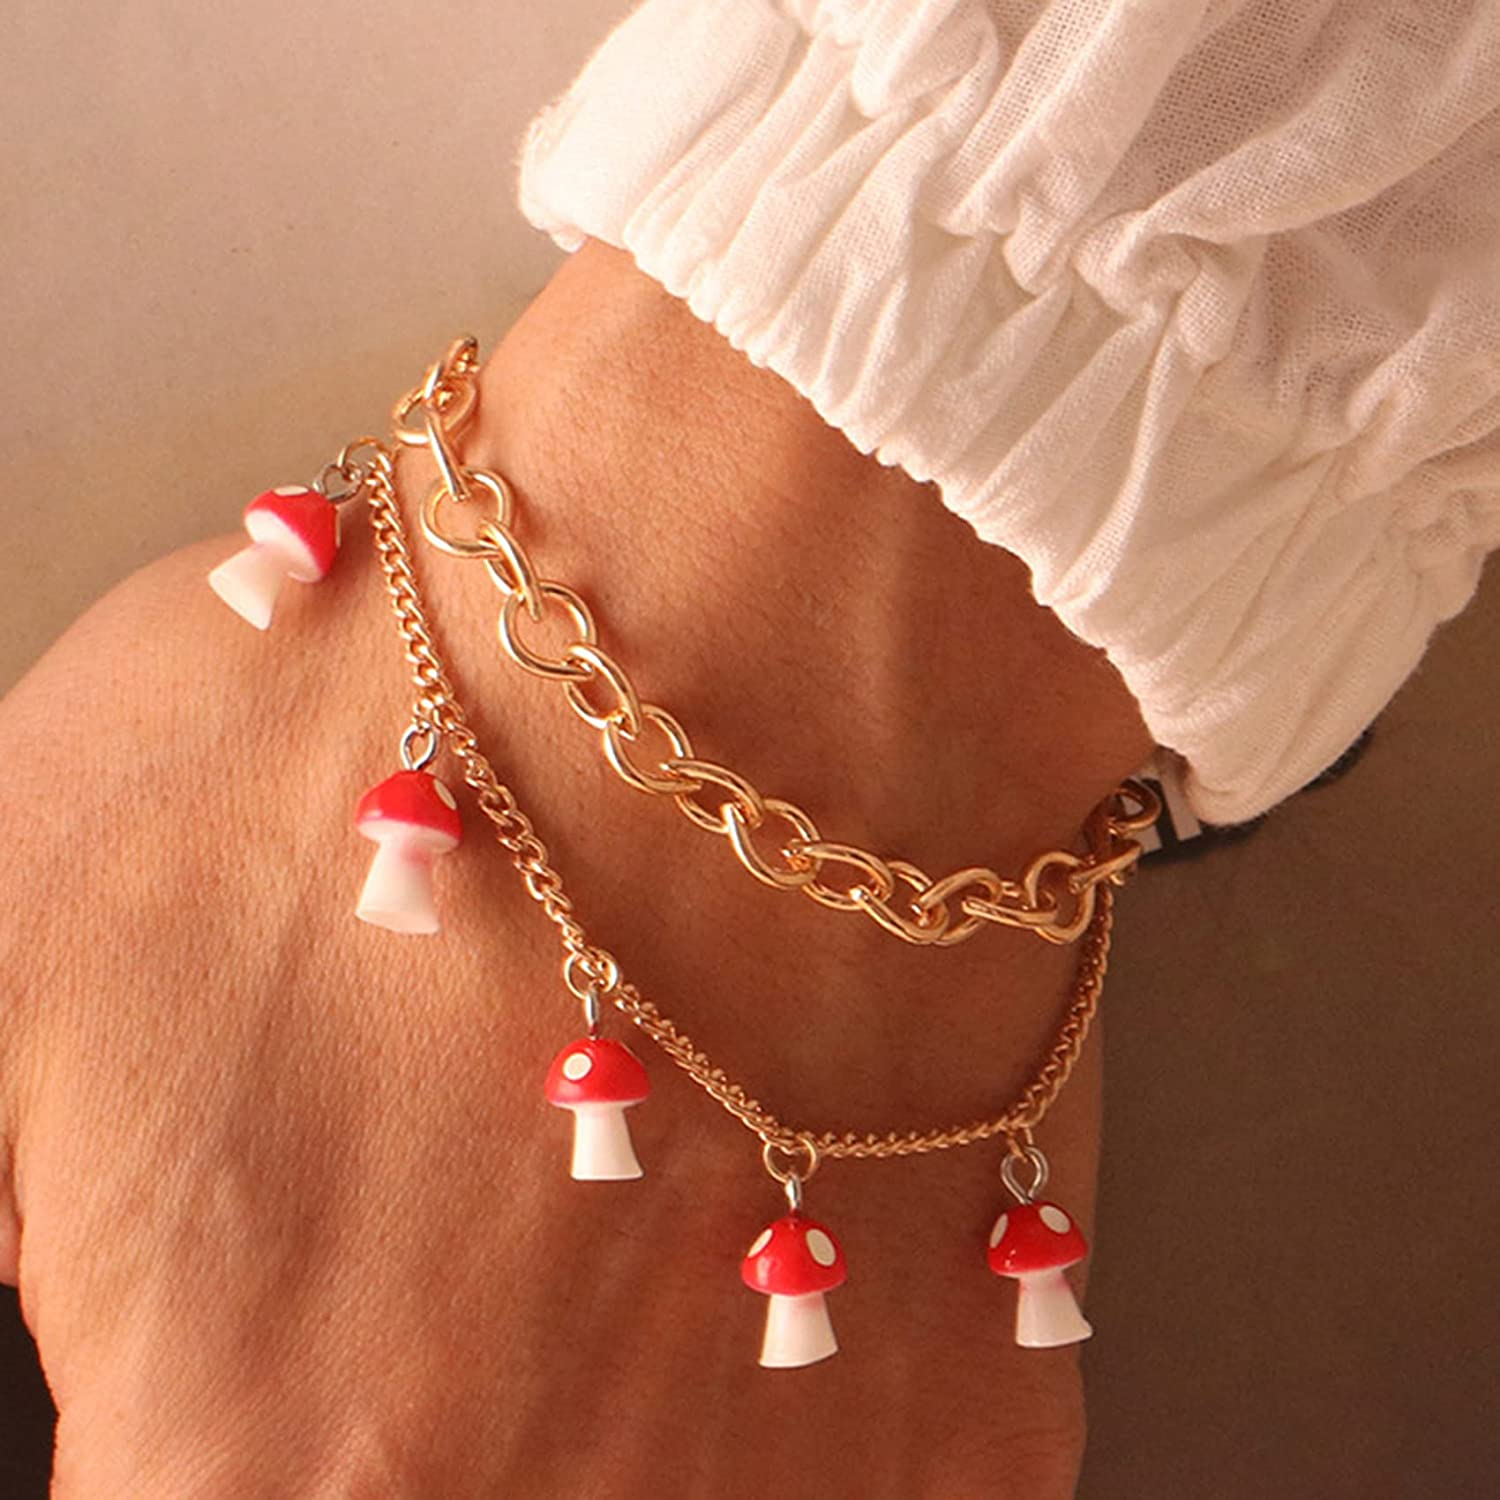 Underleaf Women's Link Opening large release sale Charm Layered Popular brand in the world Ankl Bracelet